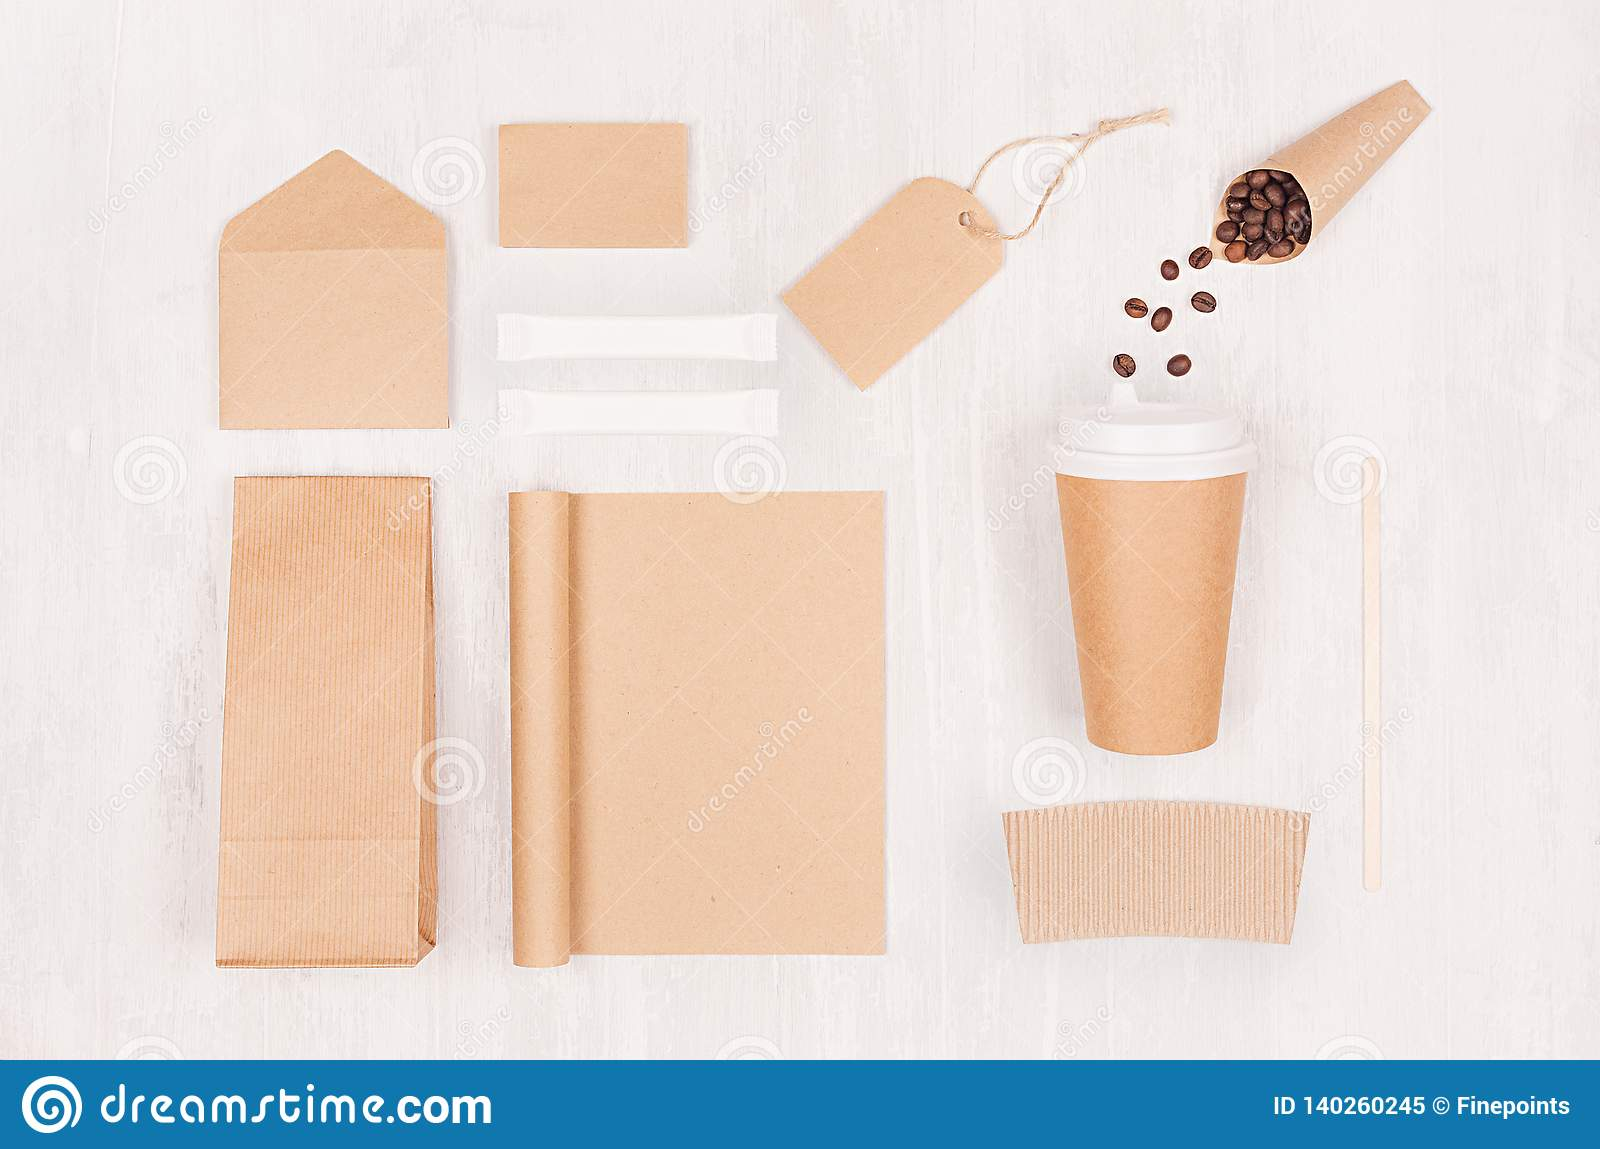 Coffee takeaway set mockup for brand - brown paper cup, blank notebook, packet, label, stationery, coffee beans, sugar on wood.